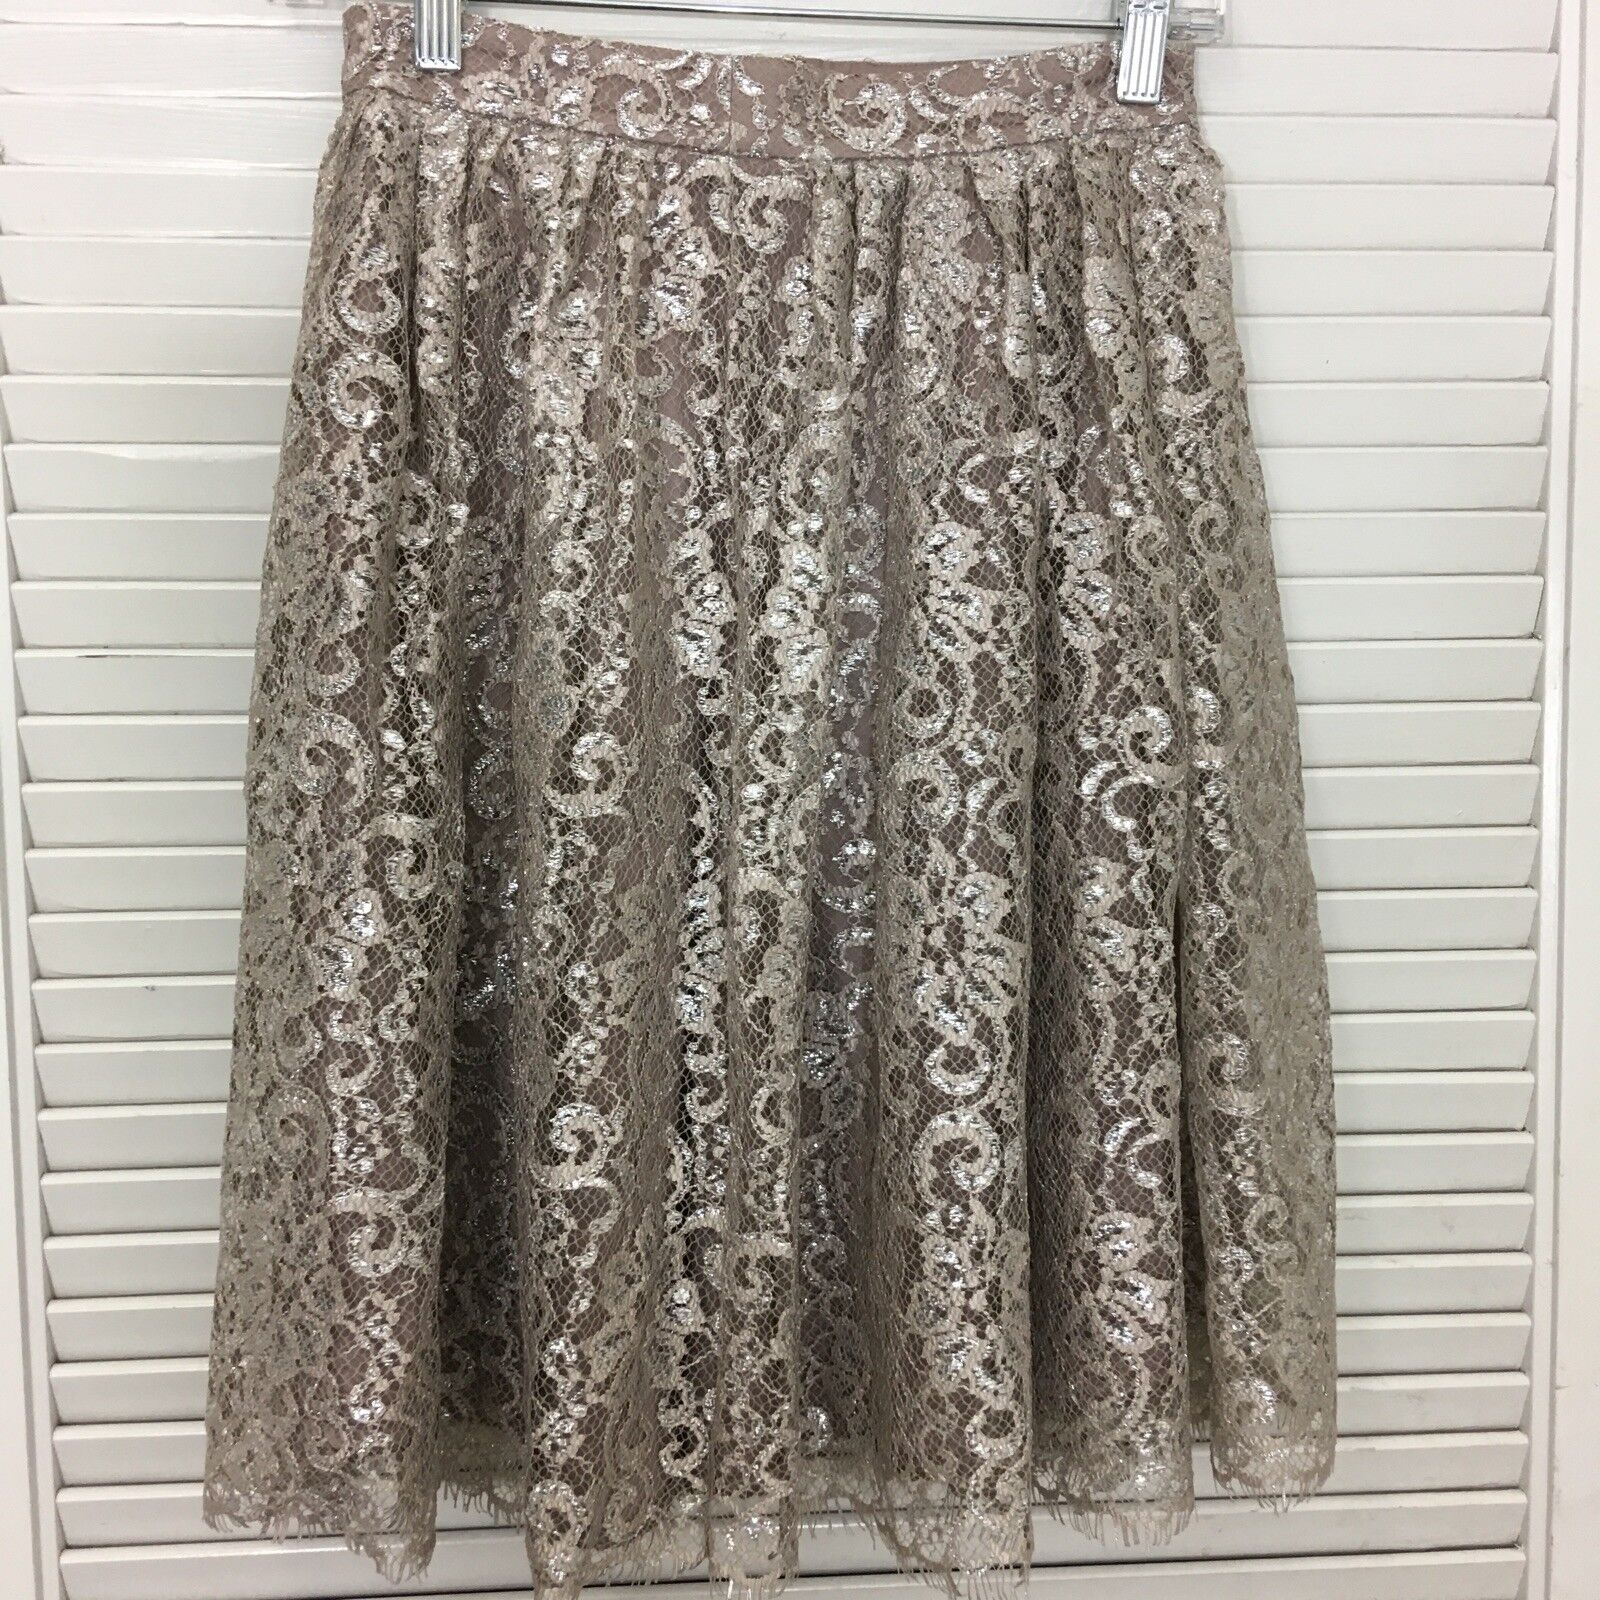 Anthropologie HD In Paris Skirt Metallic gold Lace Glitter Floral Knee Modest 0